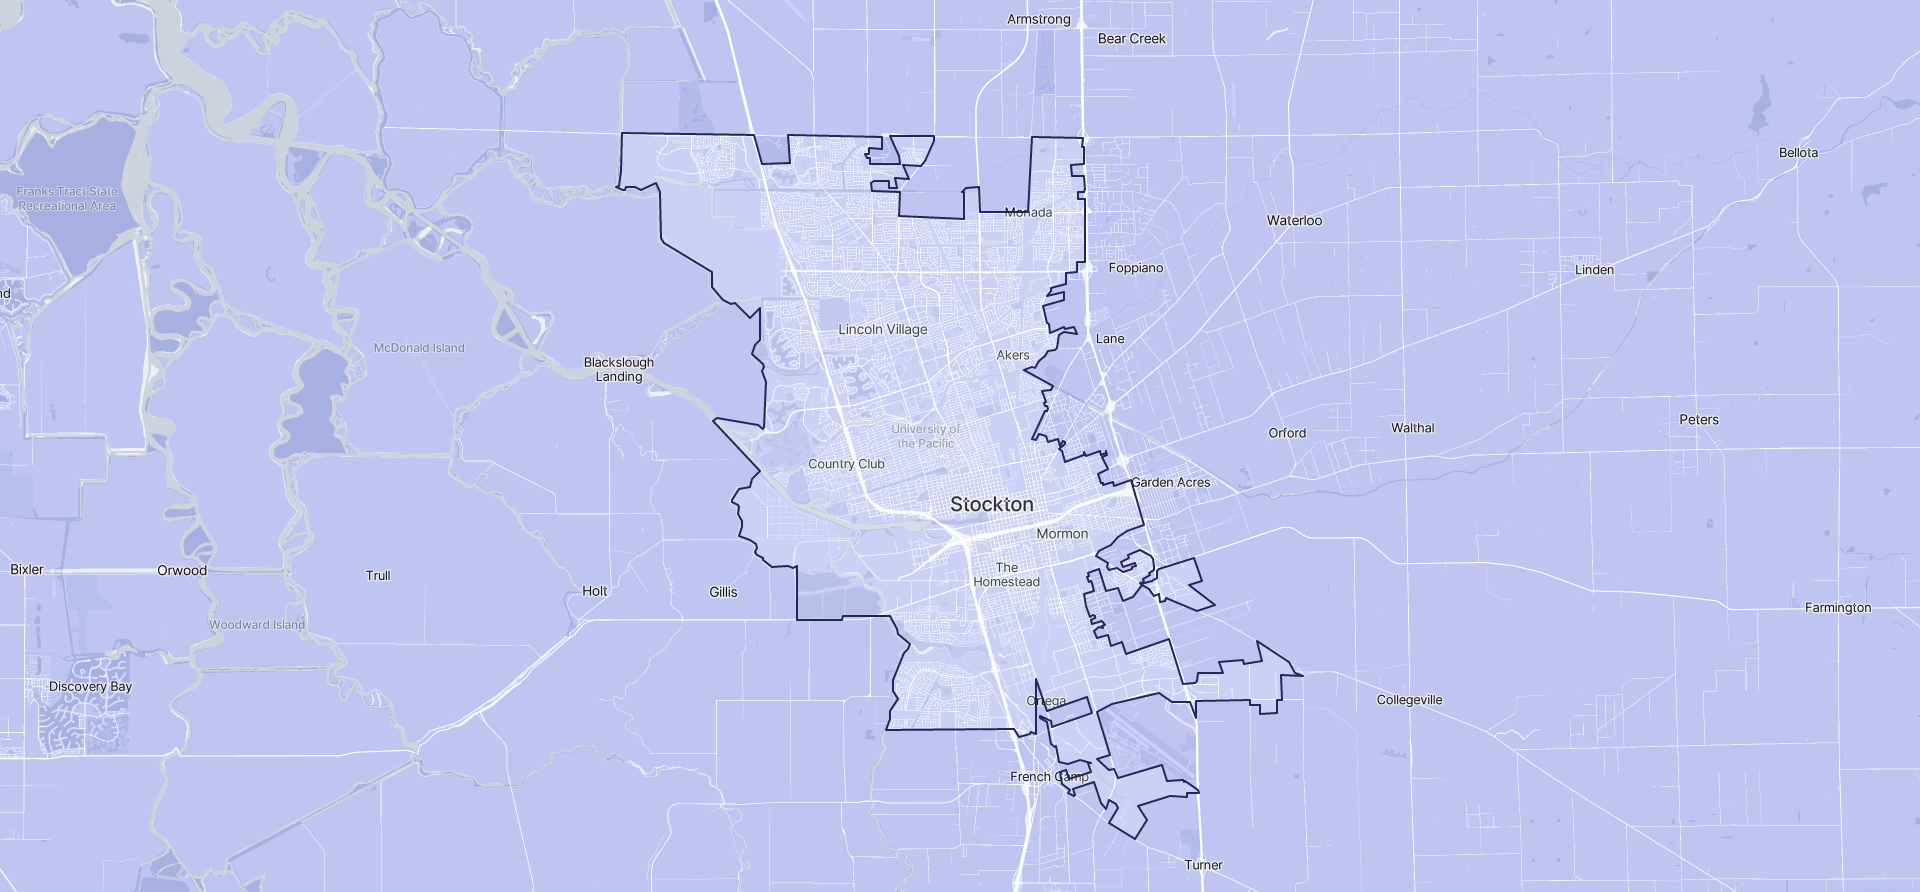 Image of Stockton boundaries on a map.